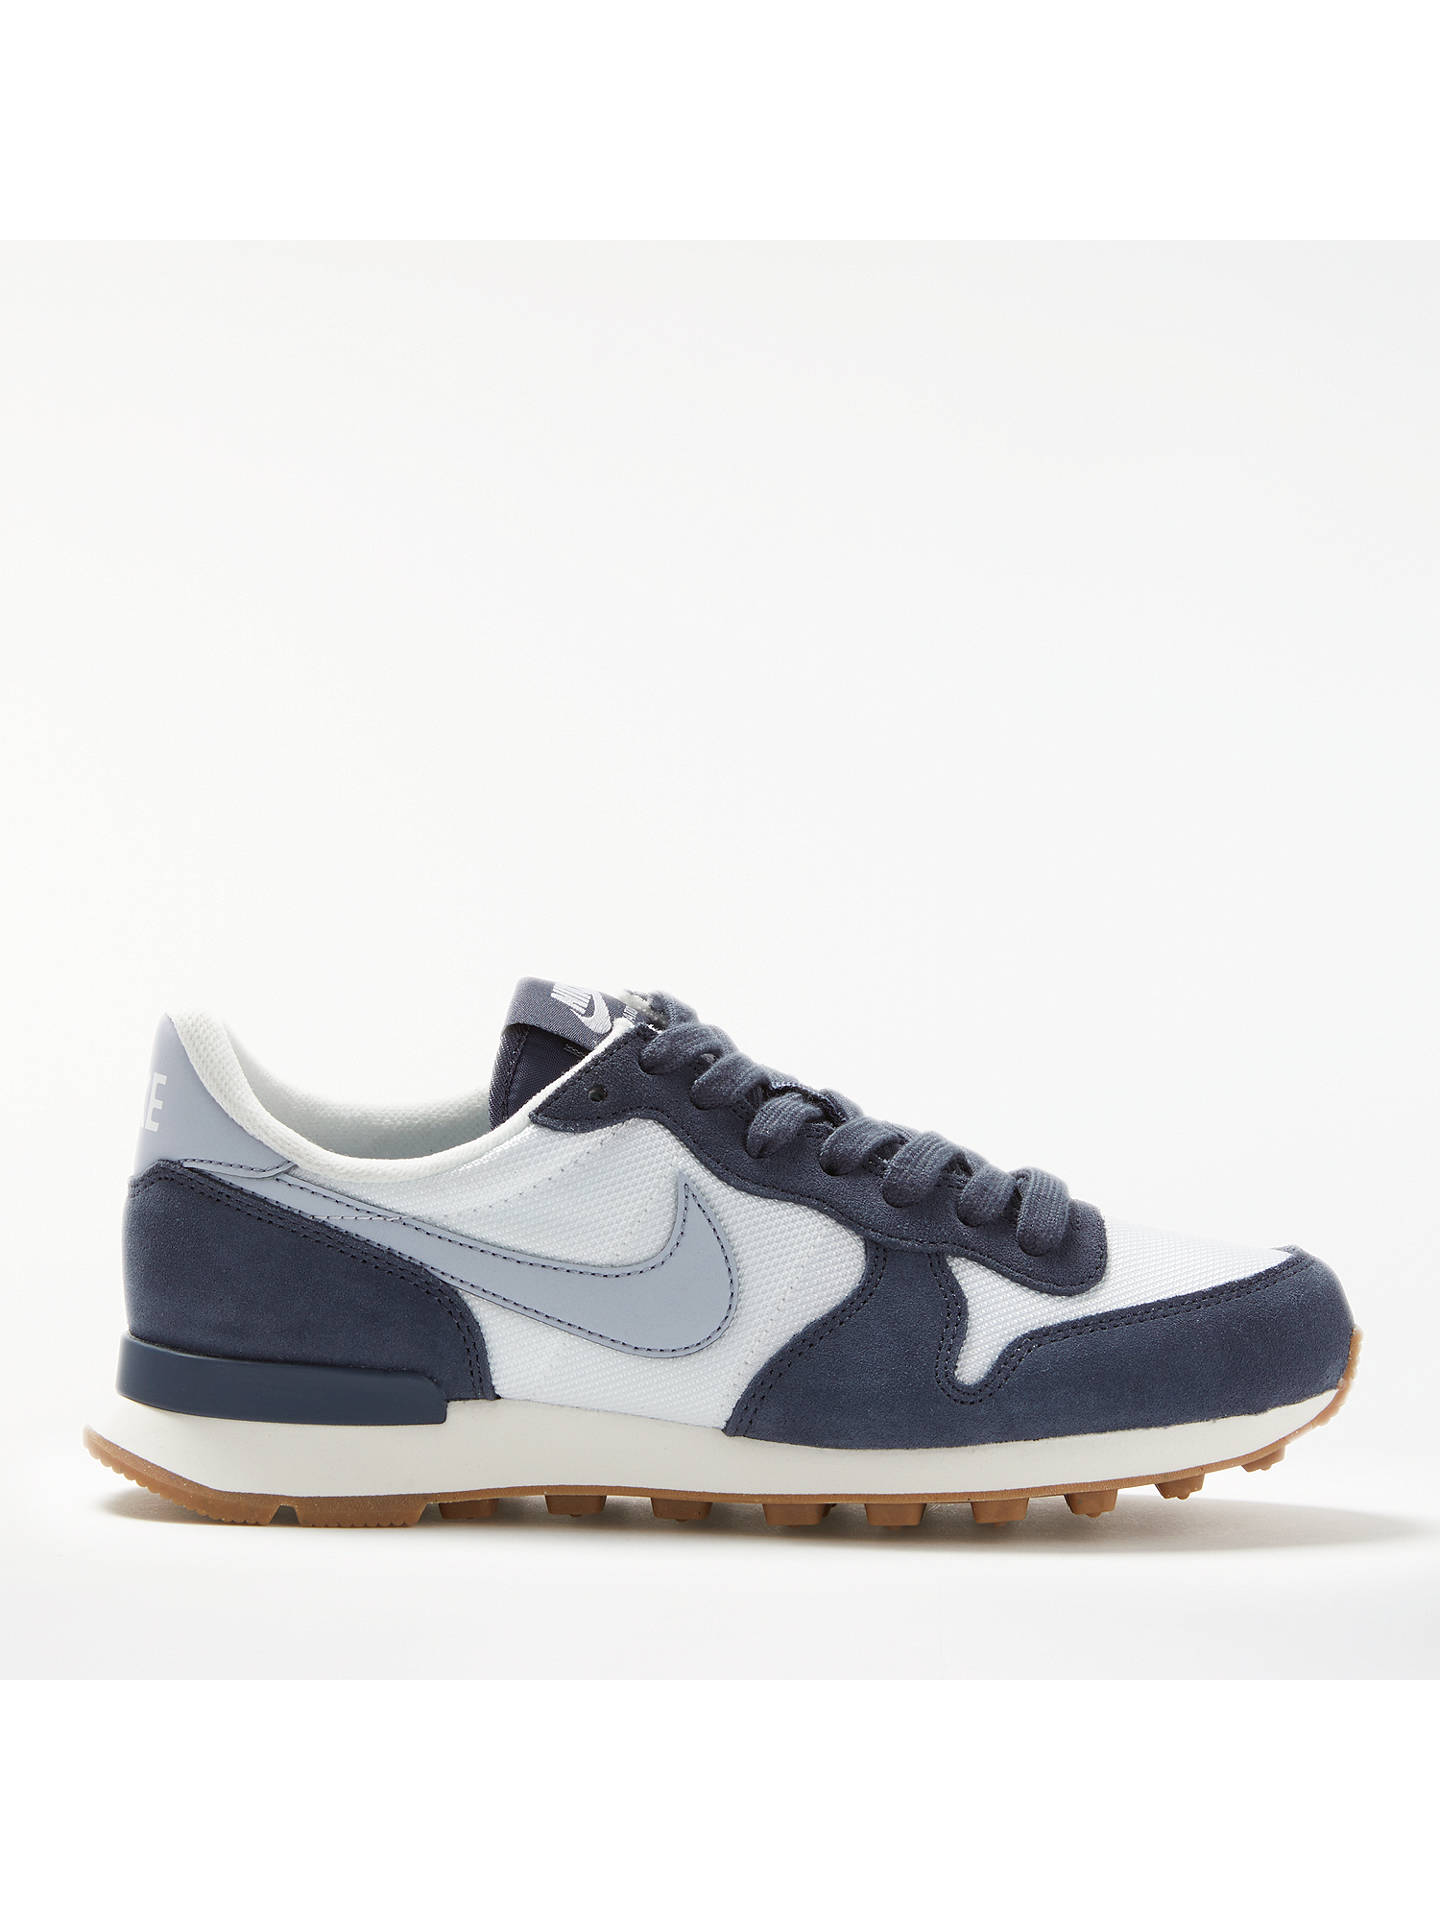 premium selection e721d 899d3 Buy Nike Internationalist Women s Trainers, White Grey Blue, 4 Online at  johnlewis ...